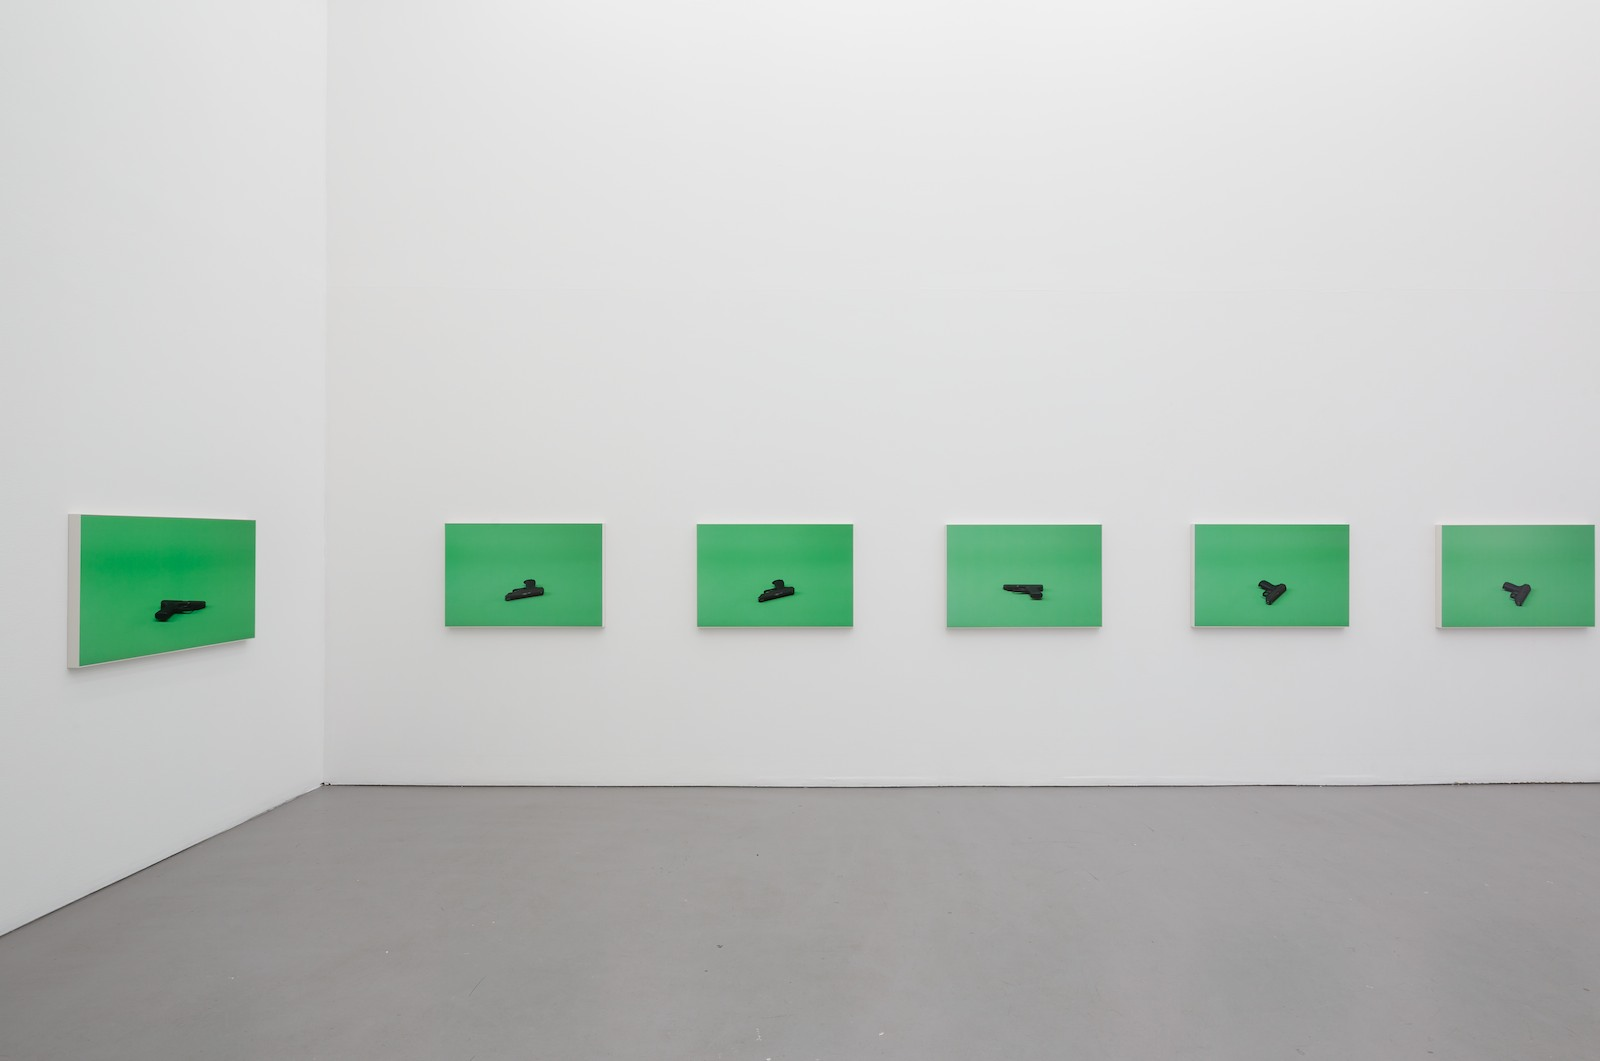 From the series FUCK. 2013, gicleé print, each 52 x 79 cm, ed. 5. Installation view Morten Andenæs, enclosed circuit x, Galleri Riis, Stockholm, 2013